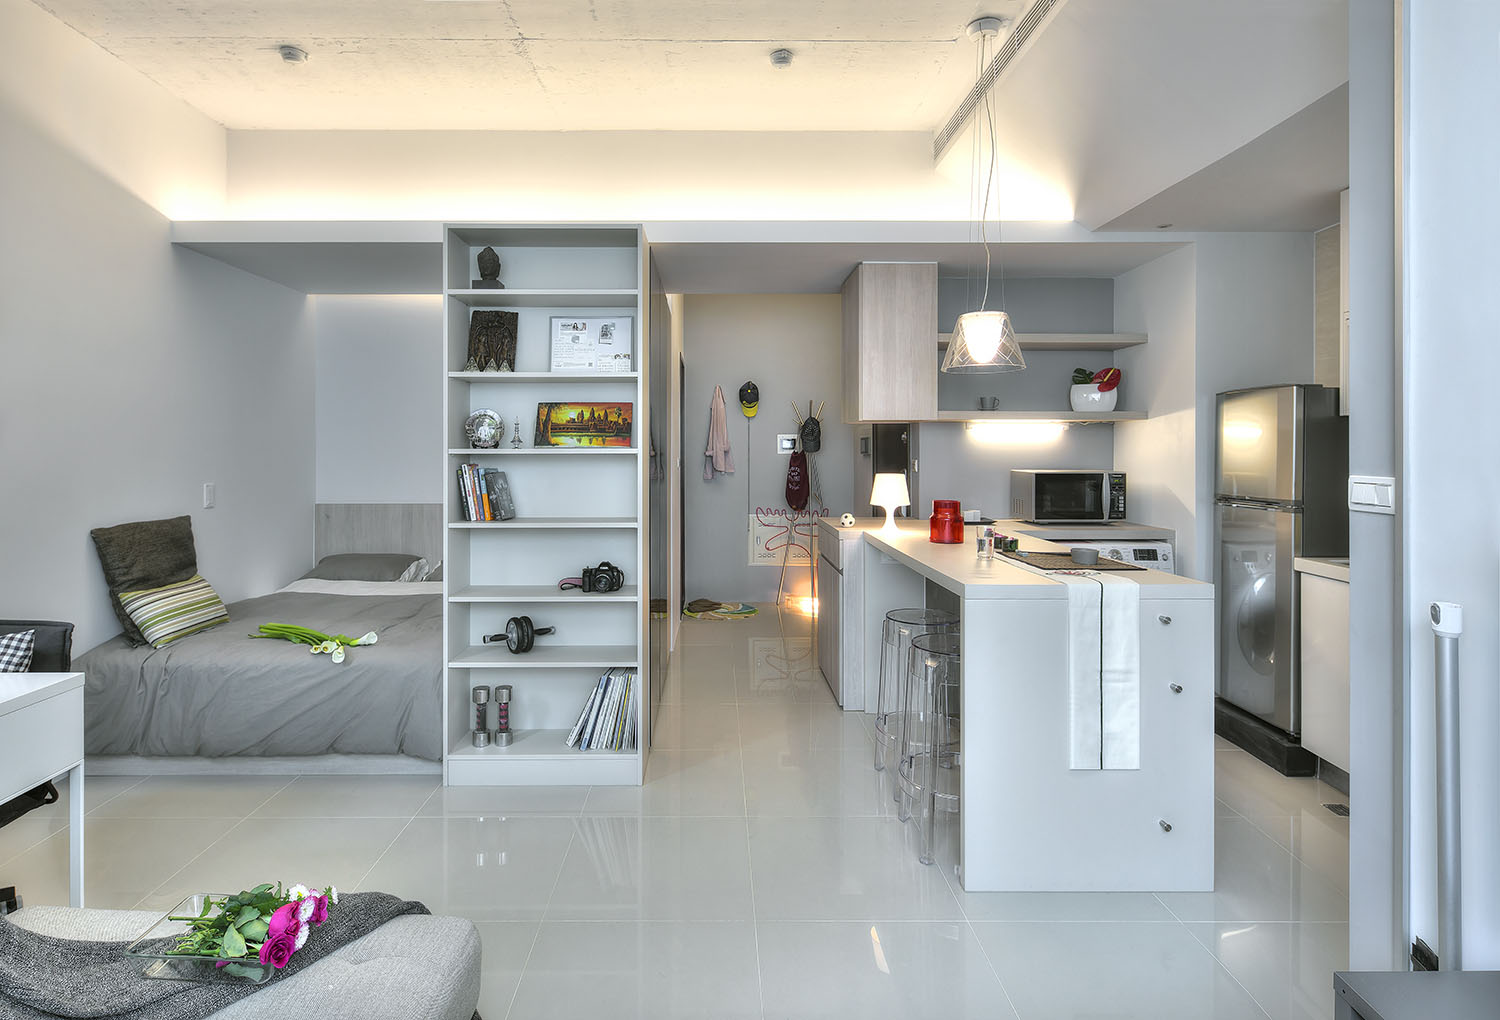 Interior Designs For Studio Apartments small taipei studio apartment with clever efficient design